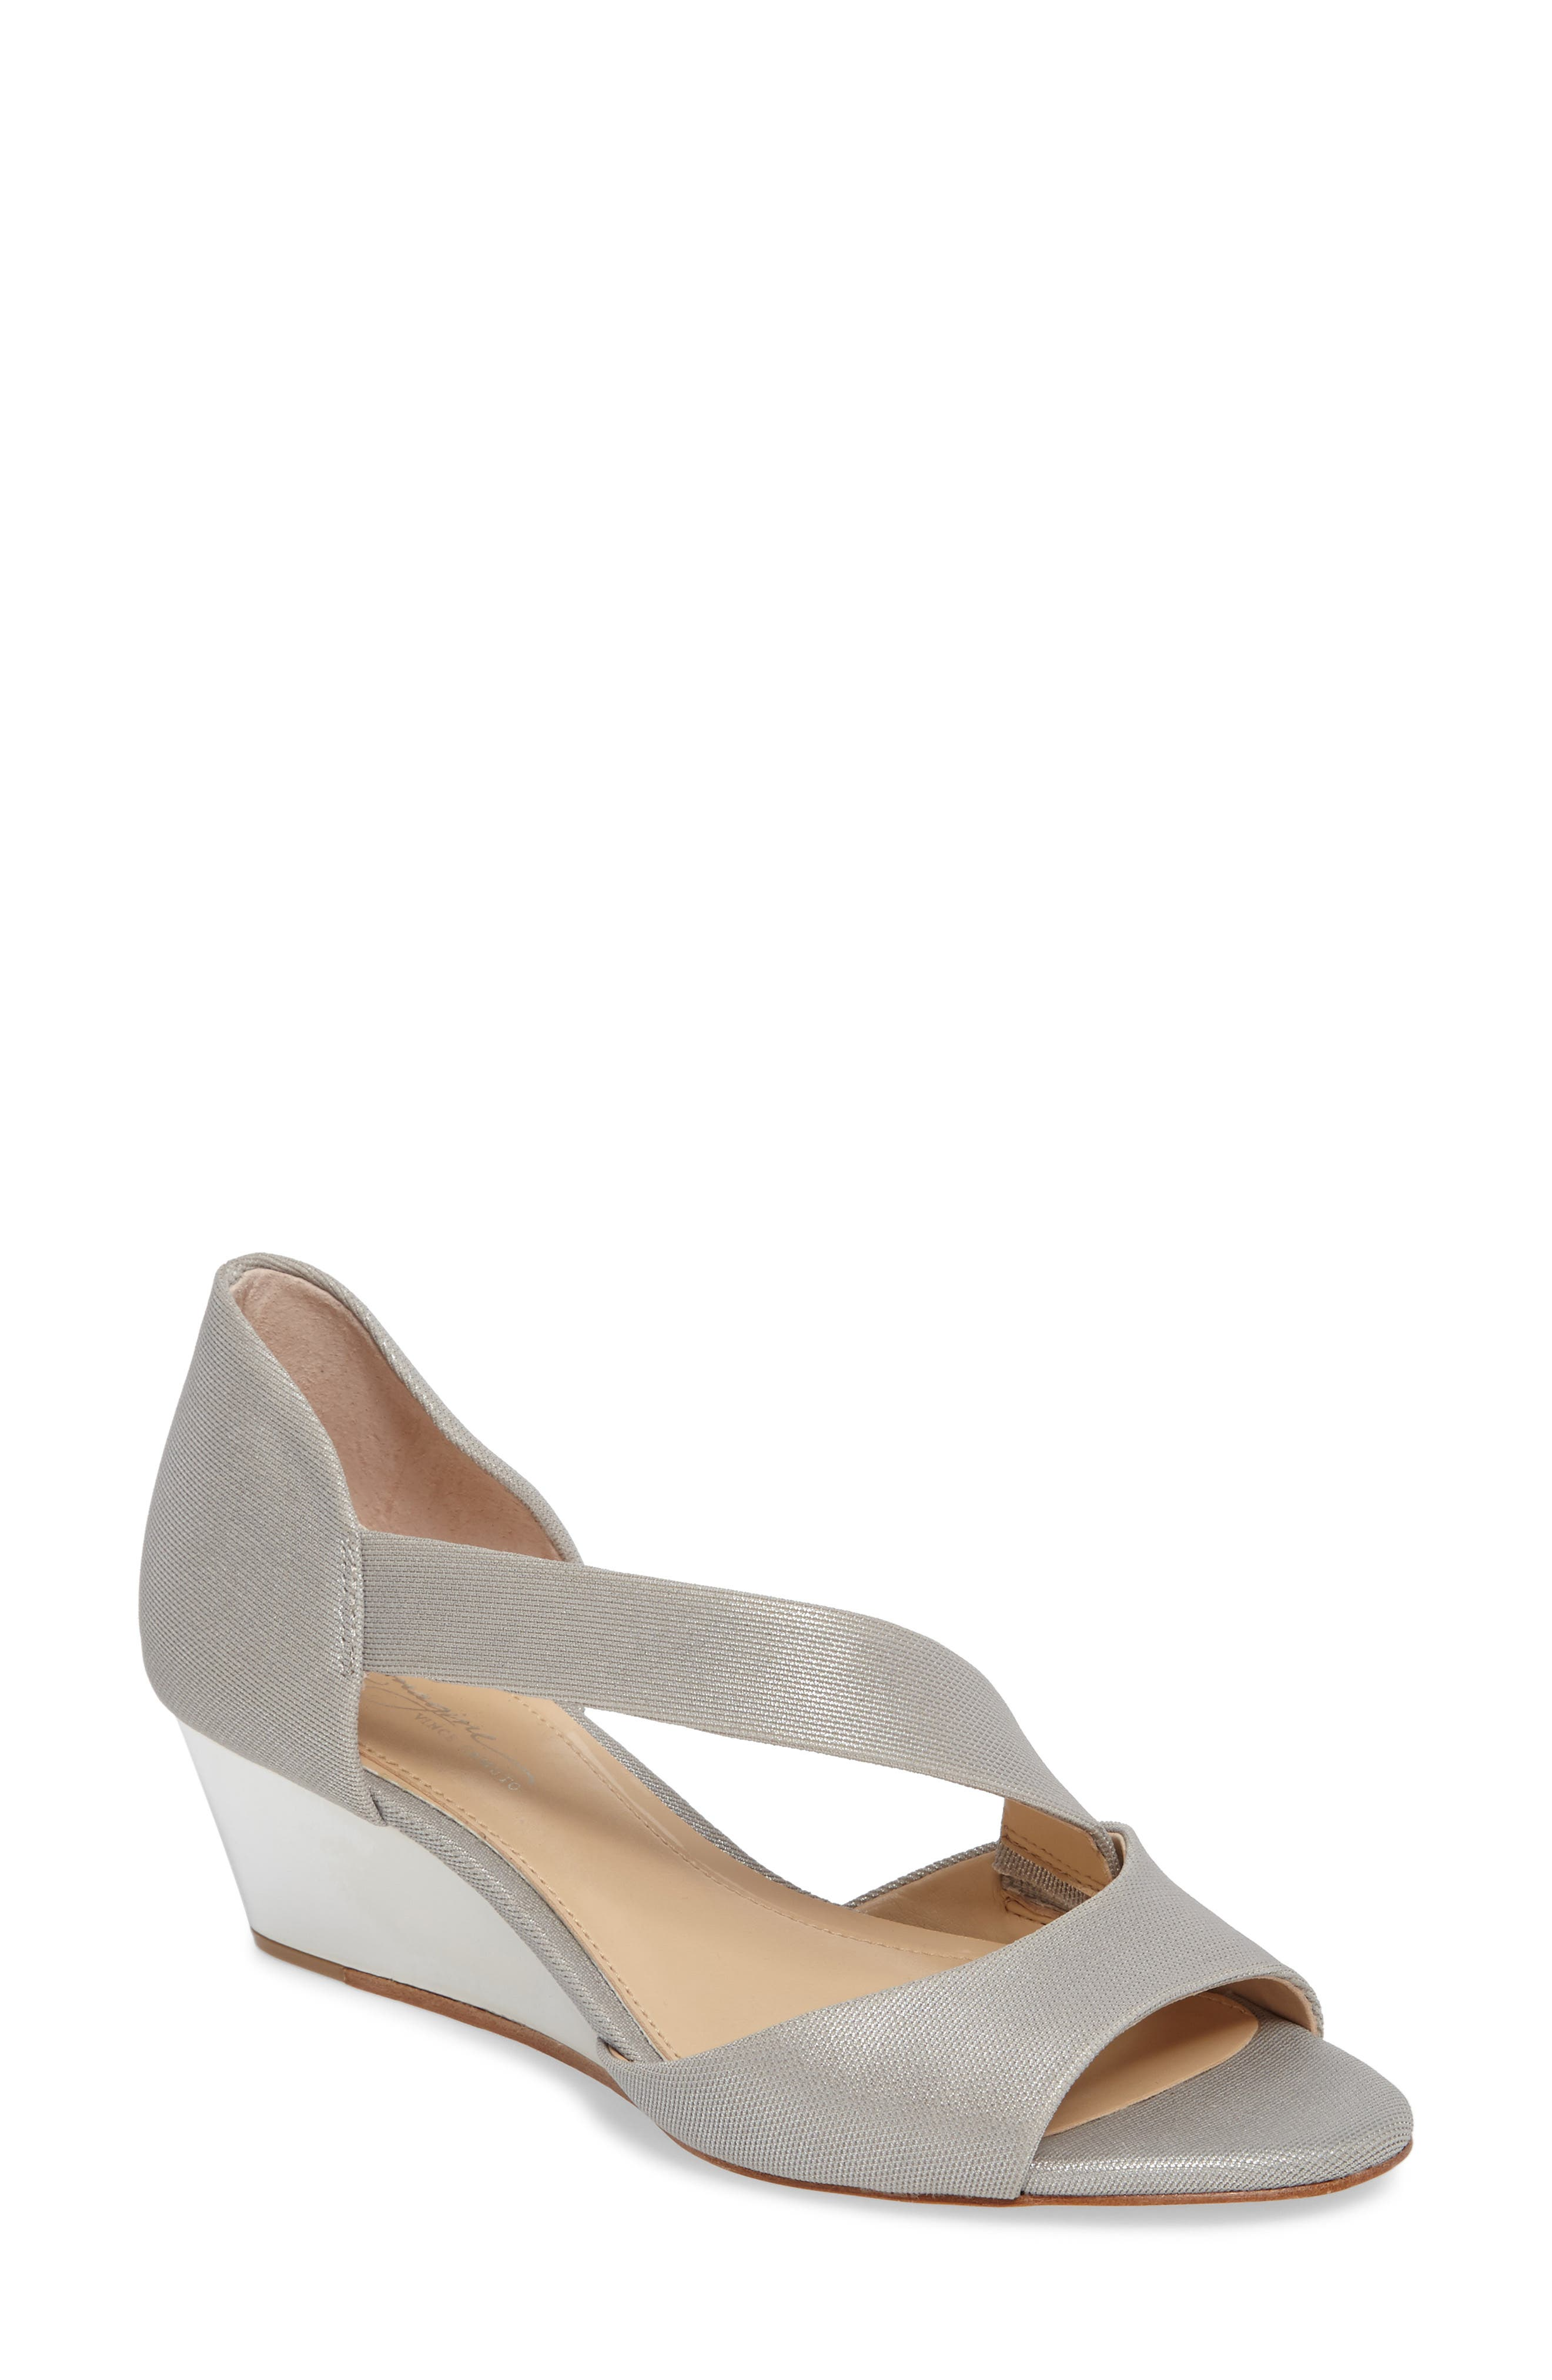 Main Image - Imagine by Vince Camuto Jefre Wedgee Sandal (Women)